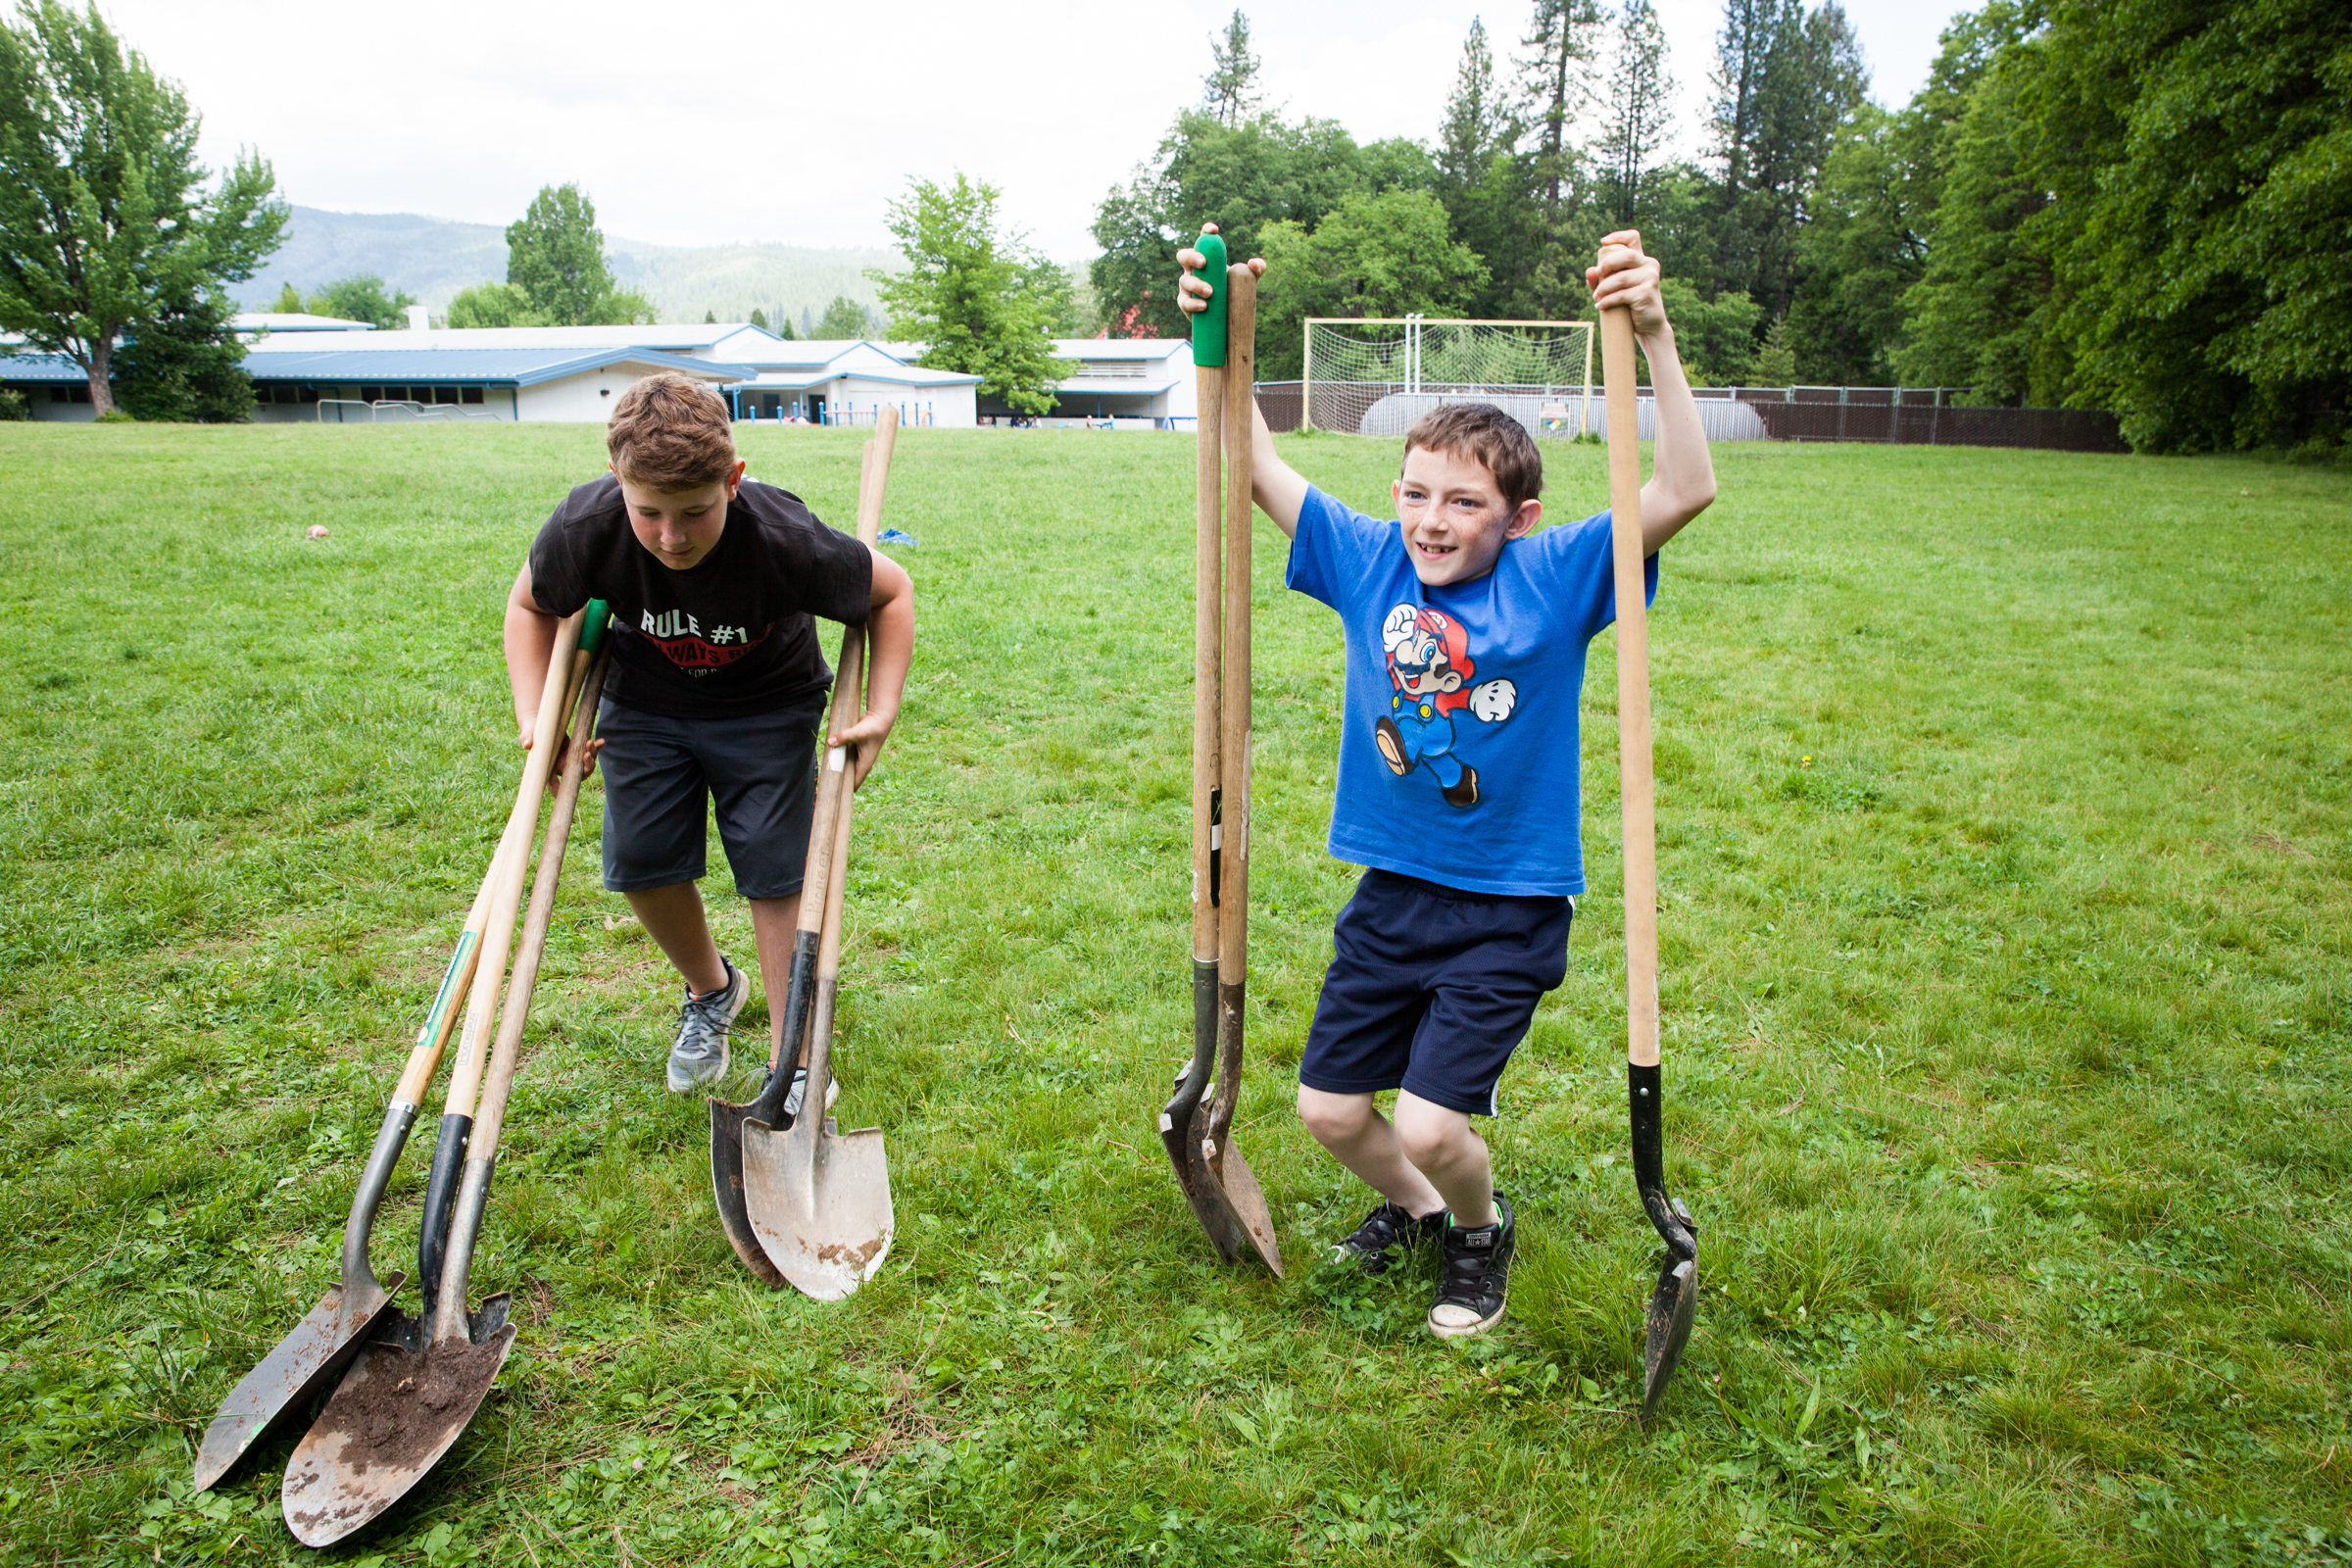 Holden Hutcherson (left) and Andrew Wyckoff during the Big Dig planting day at Quincy Elementary School in Quincy, Calif. Maggie Starbard